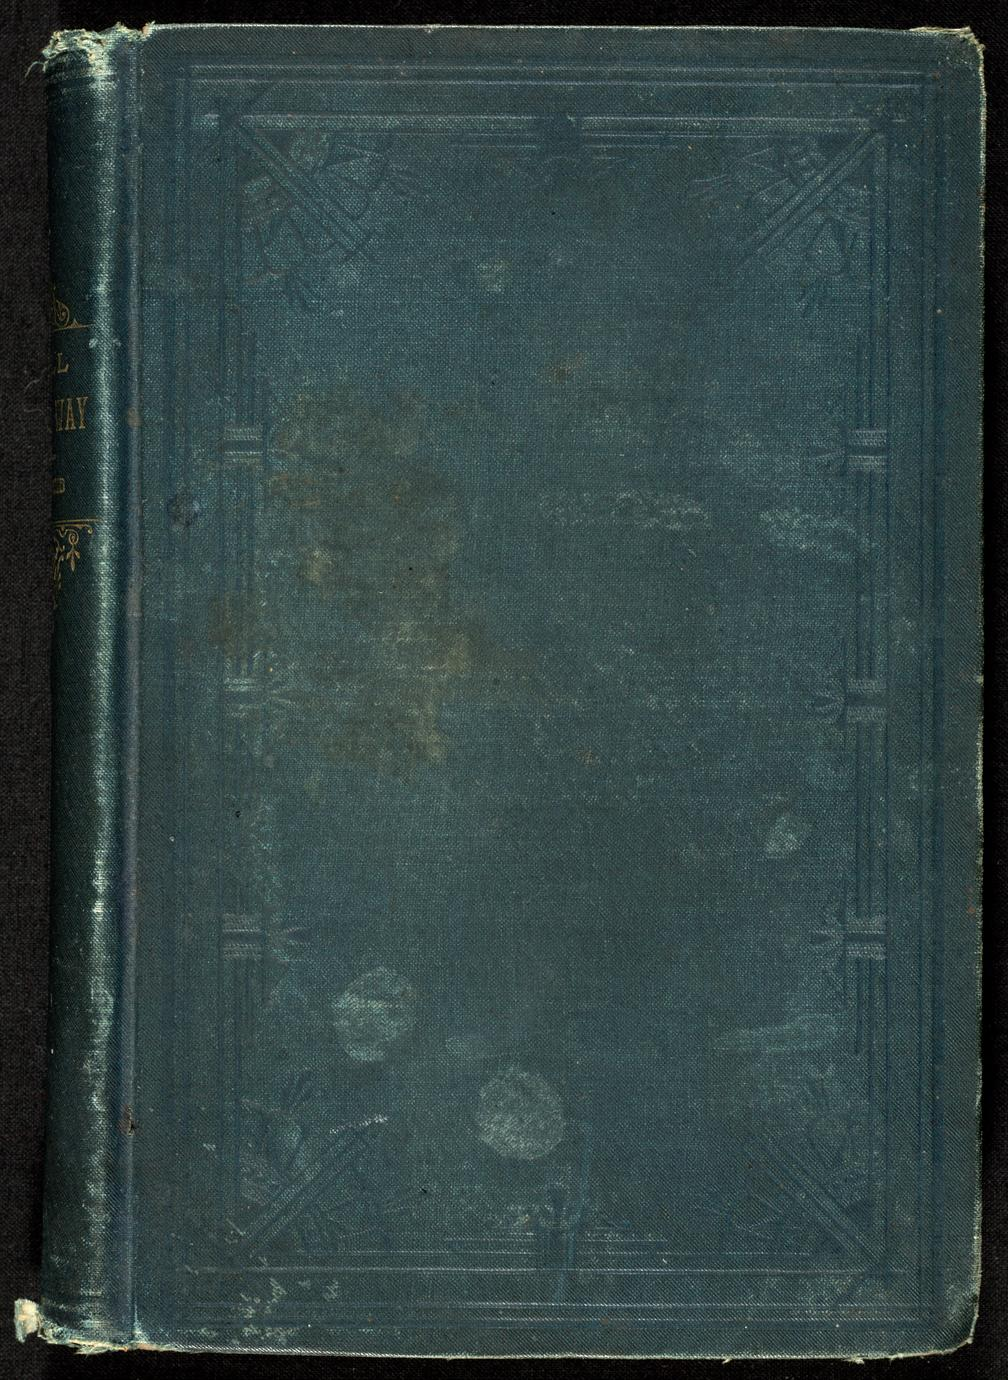 Will makes way ; or, Autobiography of Rev. S. Noland of the Kentucky Conference, M. E. Church, South (1 of 2)